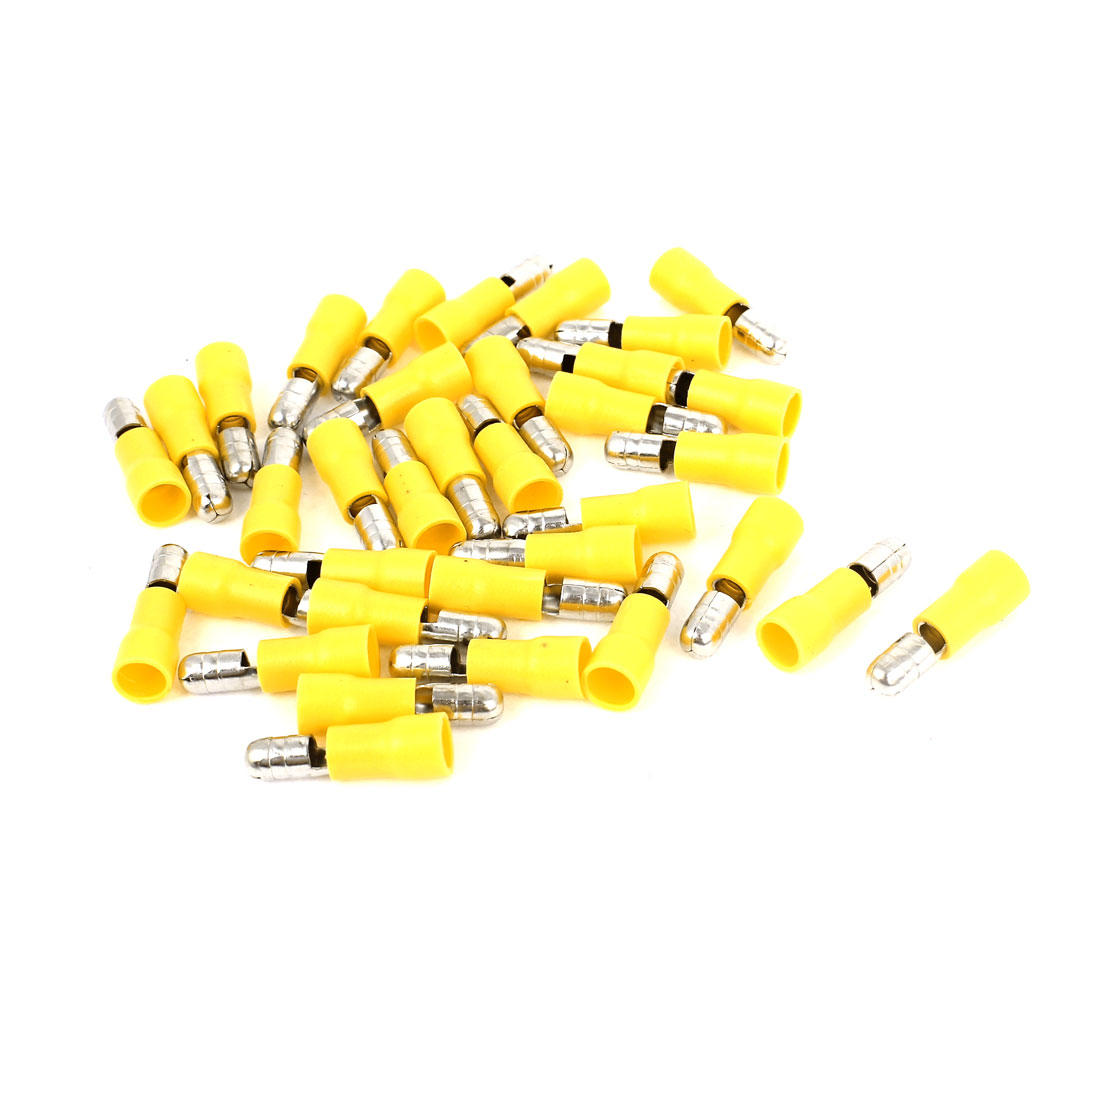 35Pcs MPD5-195 12-10AWG Yellow PVC Sleeve Insulated 5mm Cable Terminals Crimp